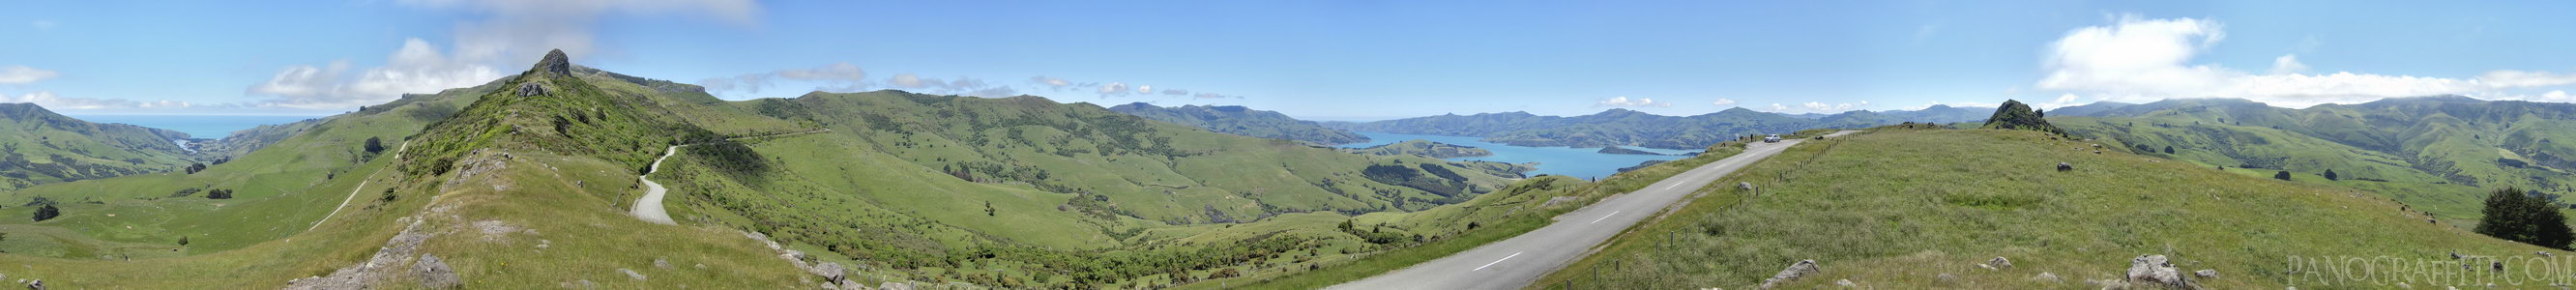 Banks Peninsula from Summit Road - A view of both the Akaroa Harbour and Pacific Ocean is possible from the top of Summit Road.  This 360 degree view is rendered in HDR from bracketed shots.